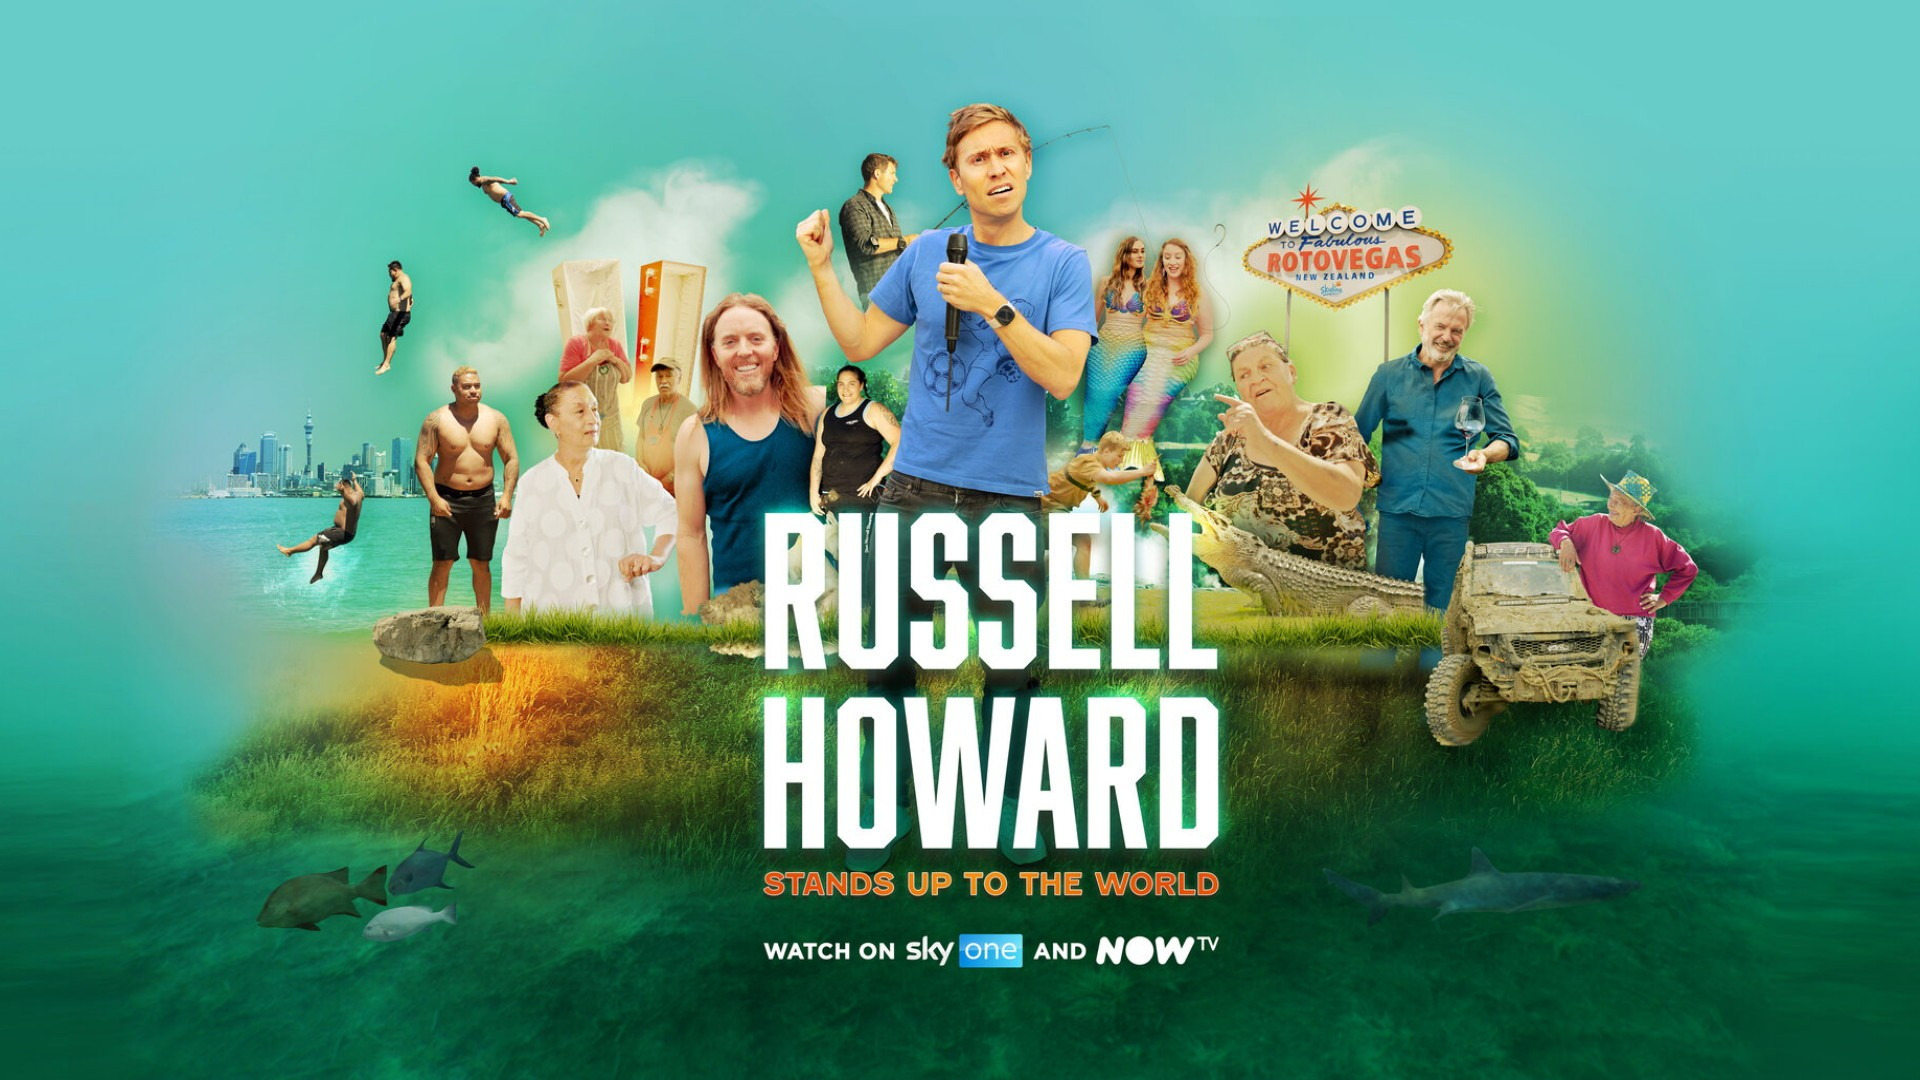 Show Russell Howard Stands Up to the World